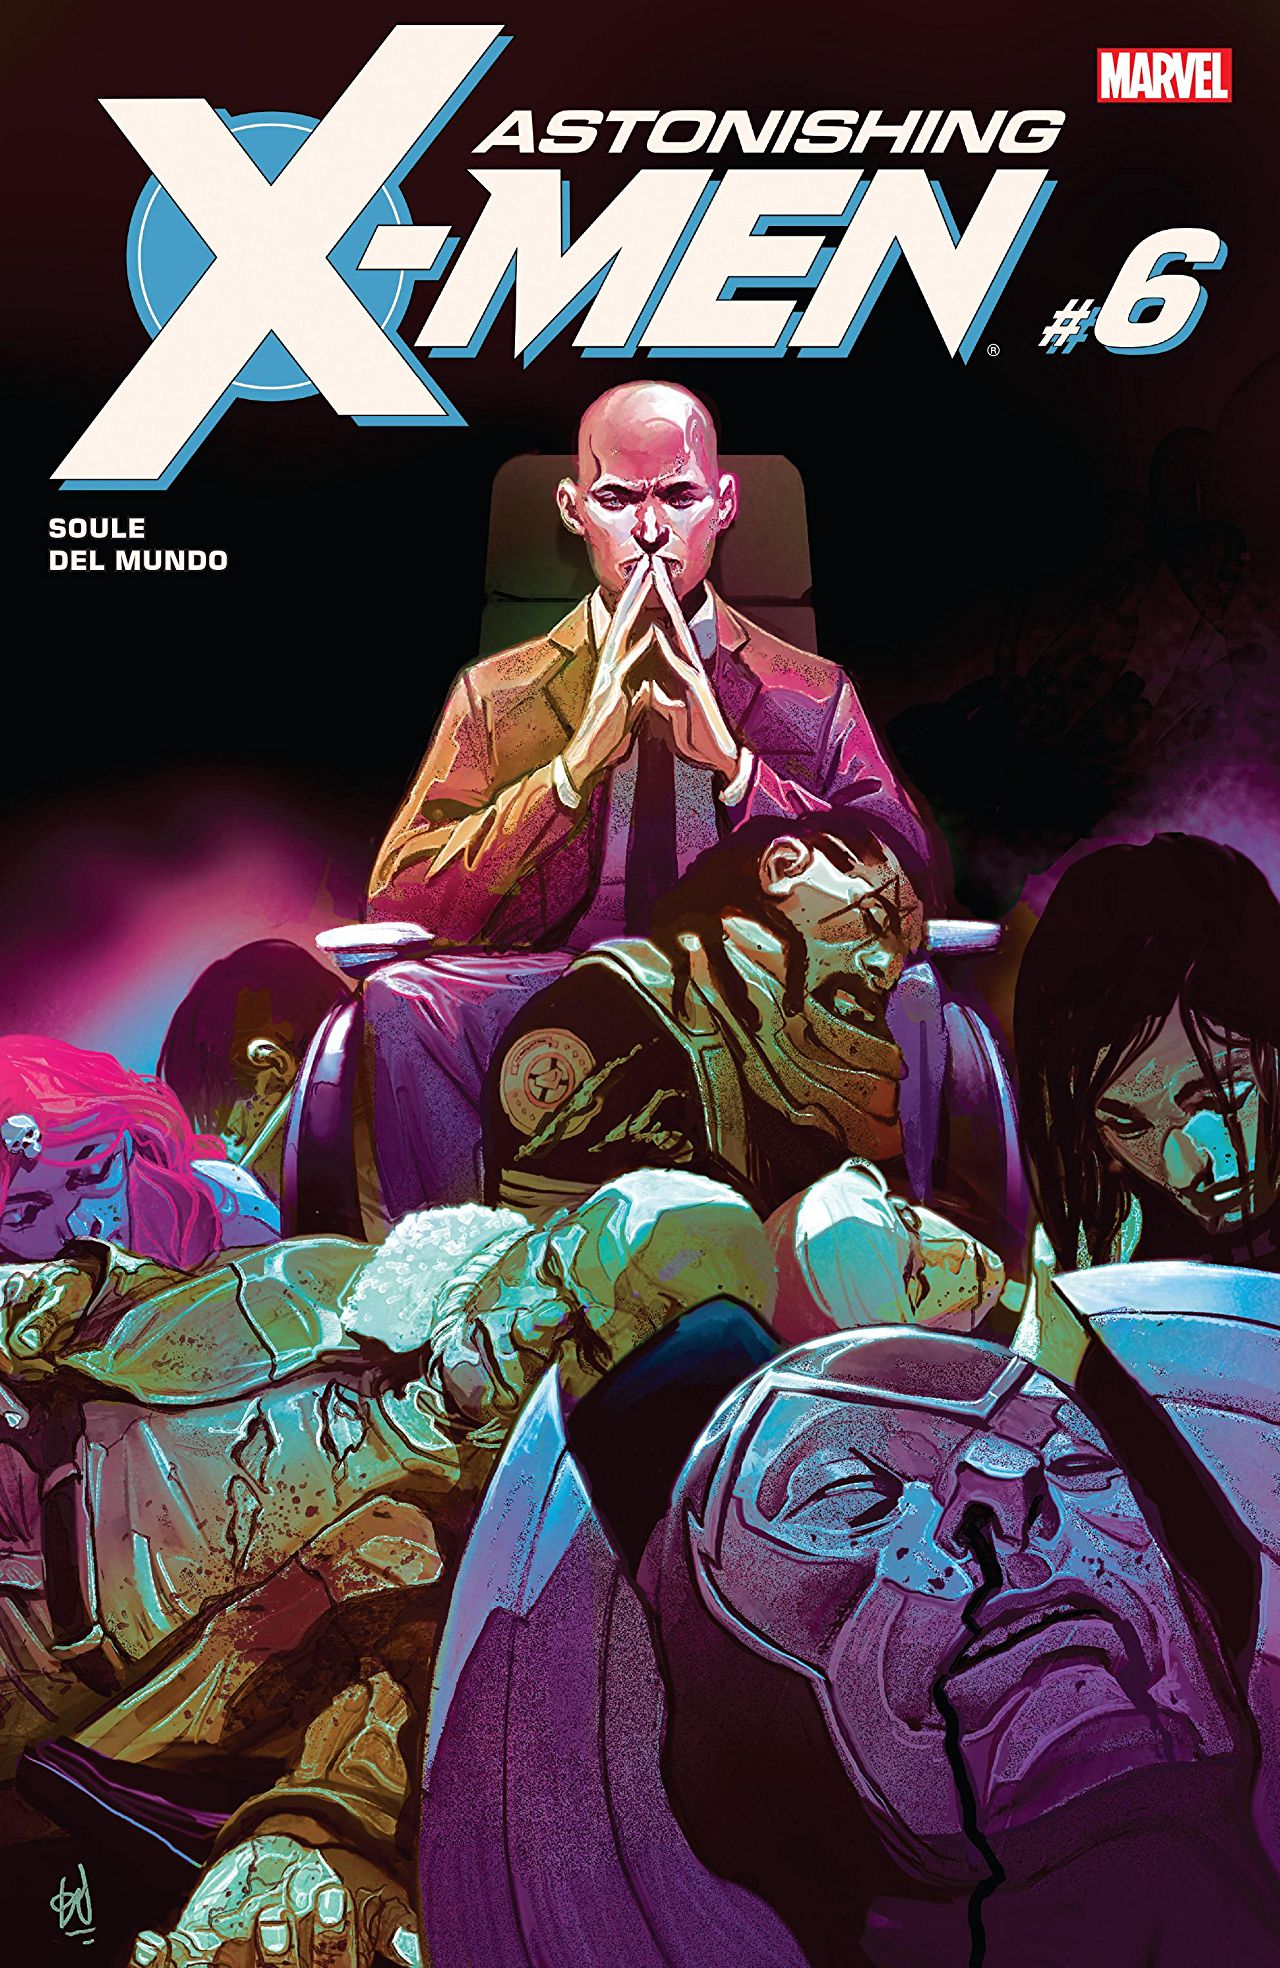 Astonishing X-Me vol. 4 #6